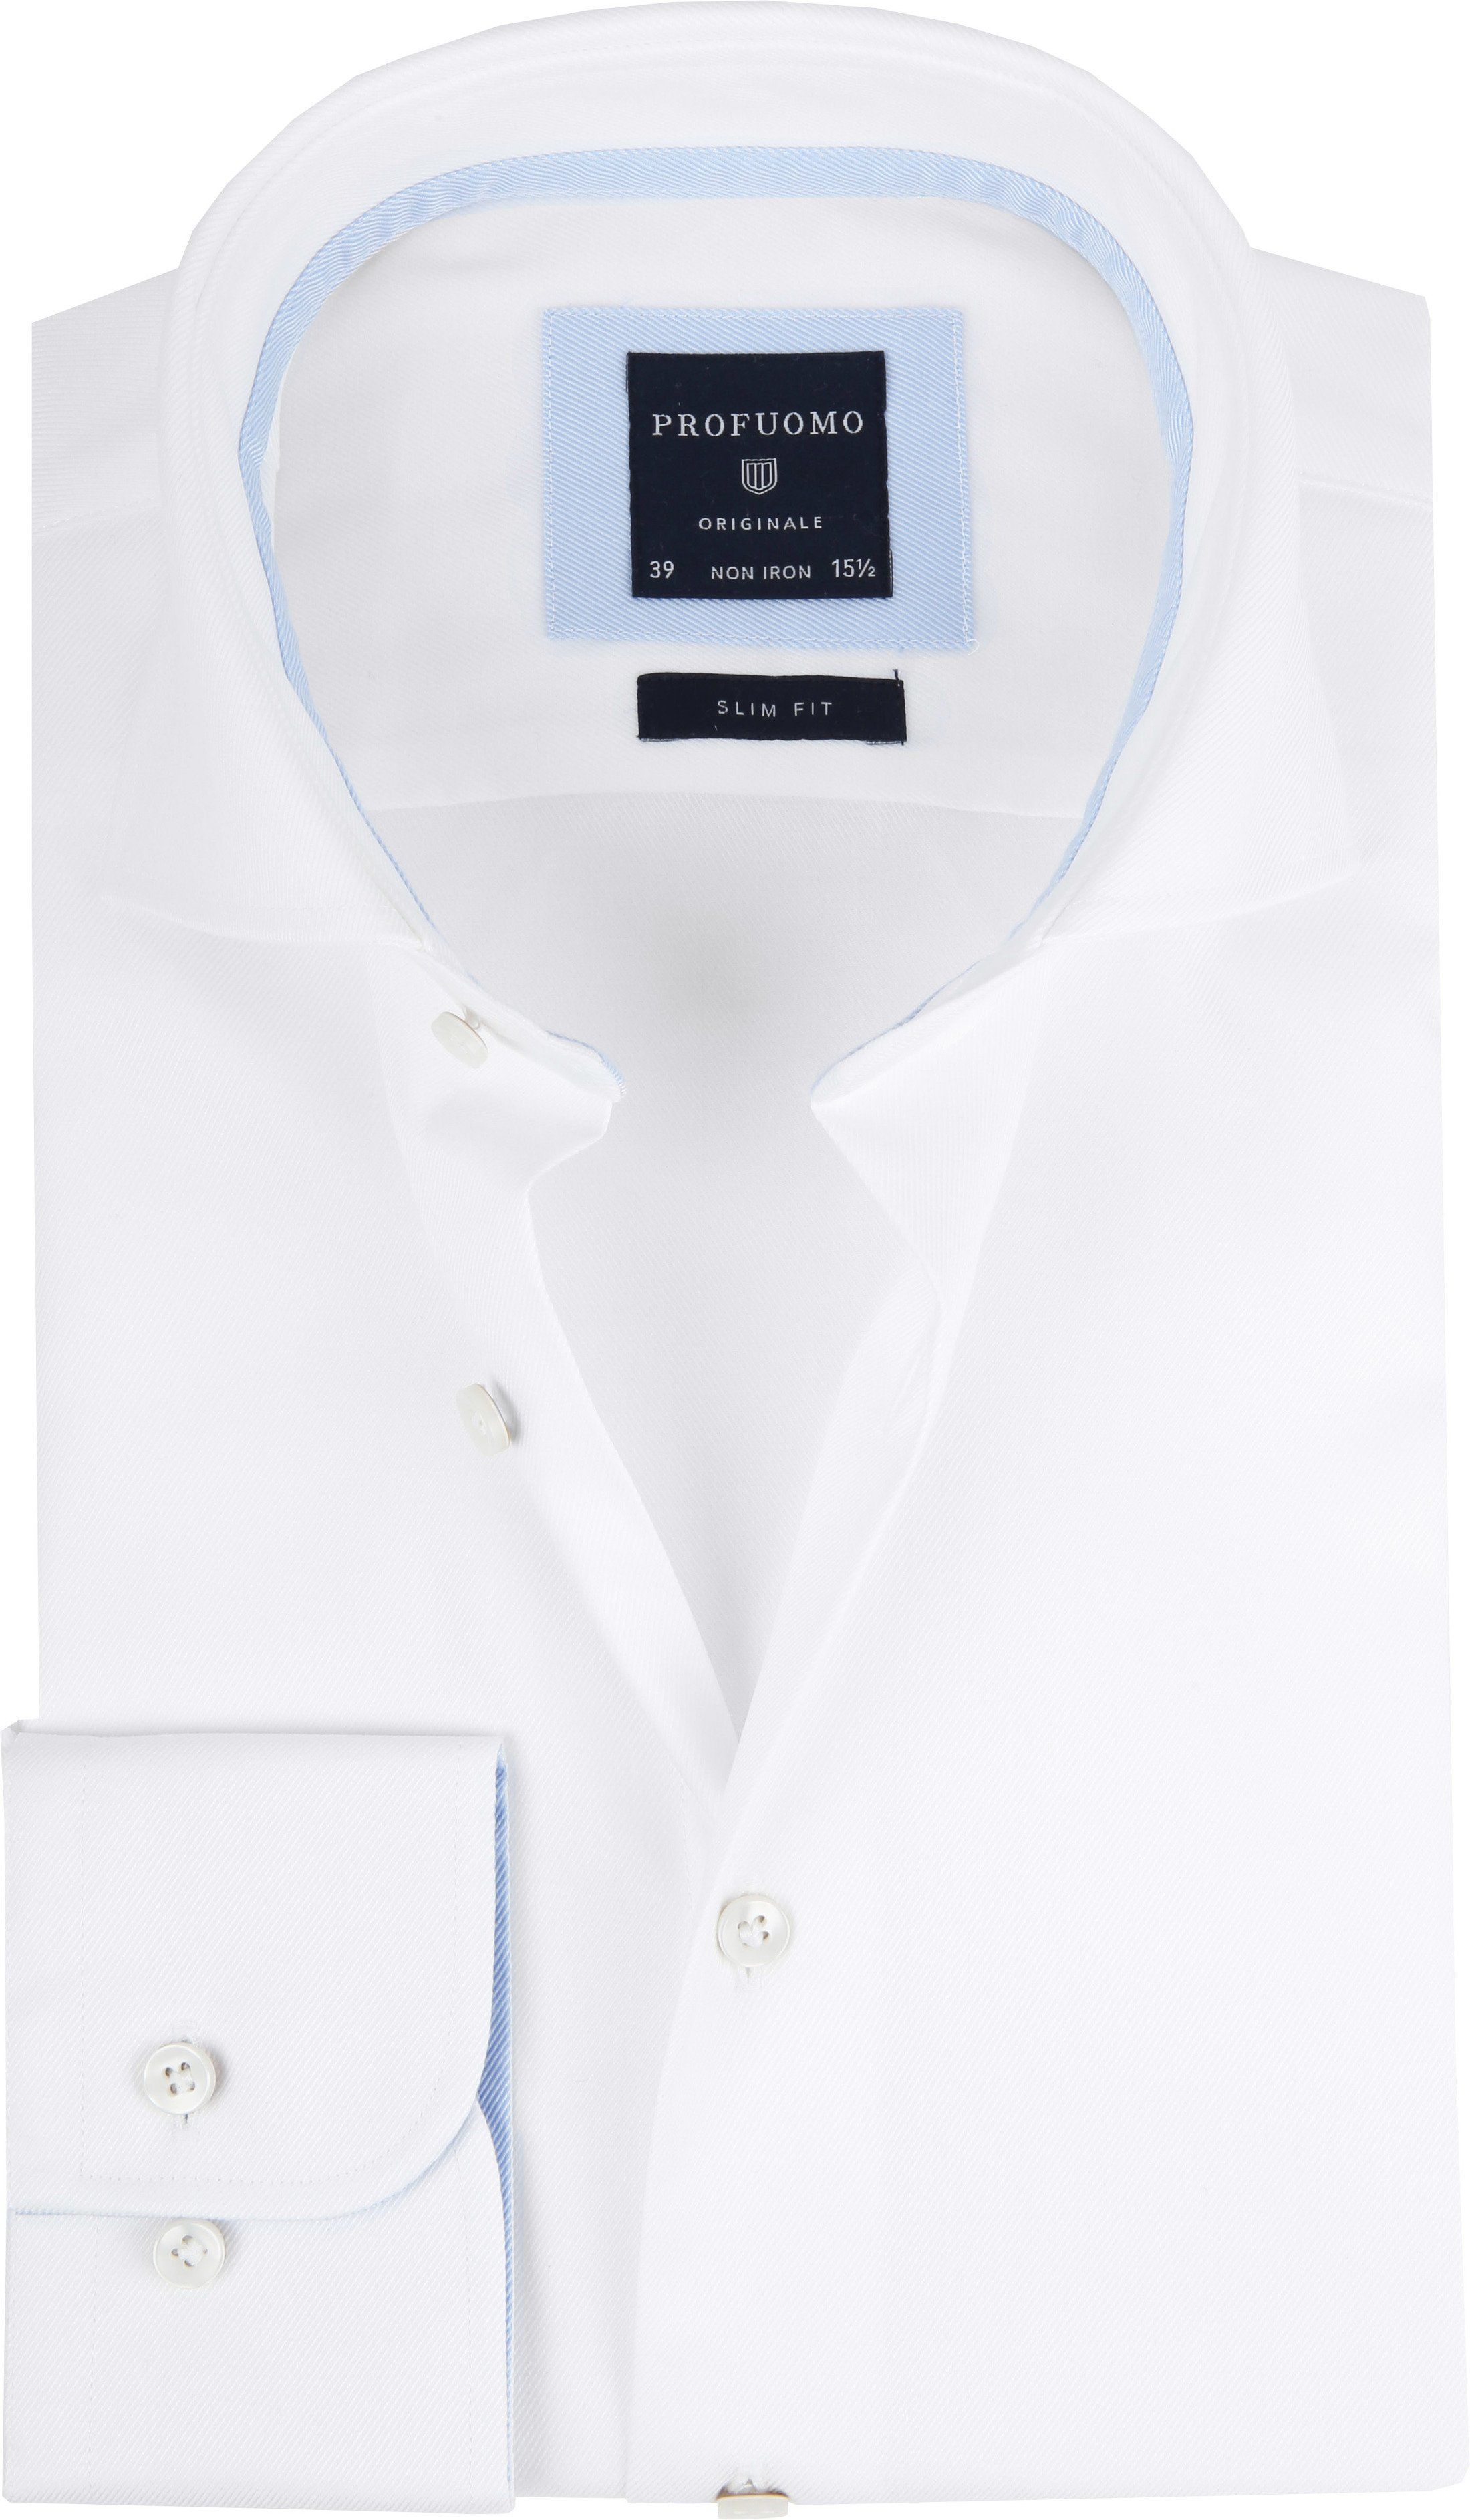 Profuomo Shirt White Blue Accent foto 0